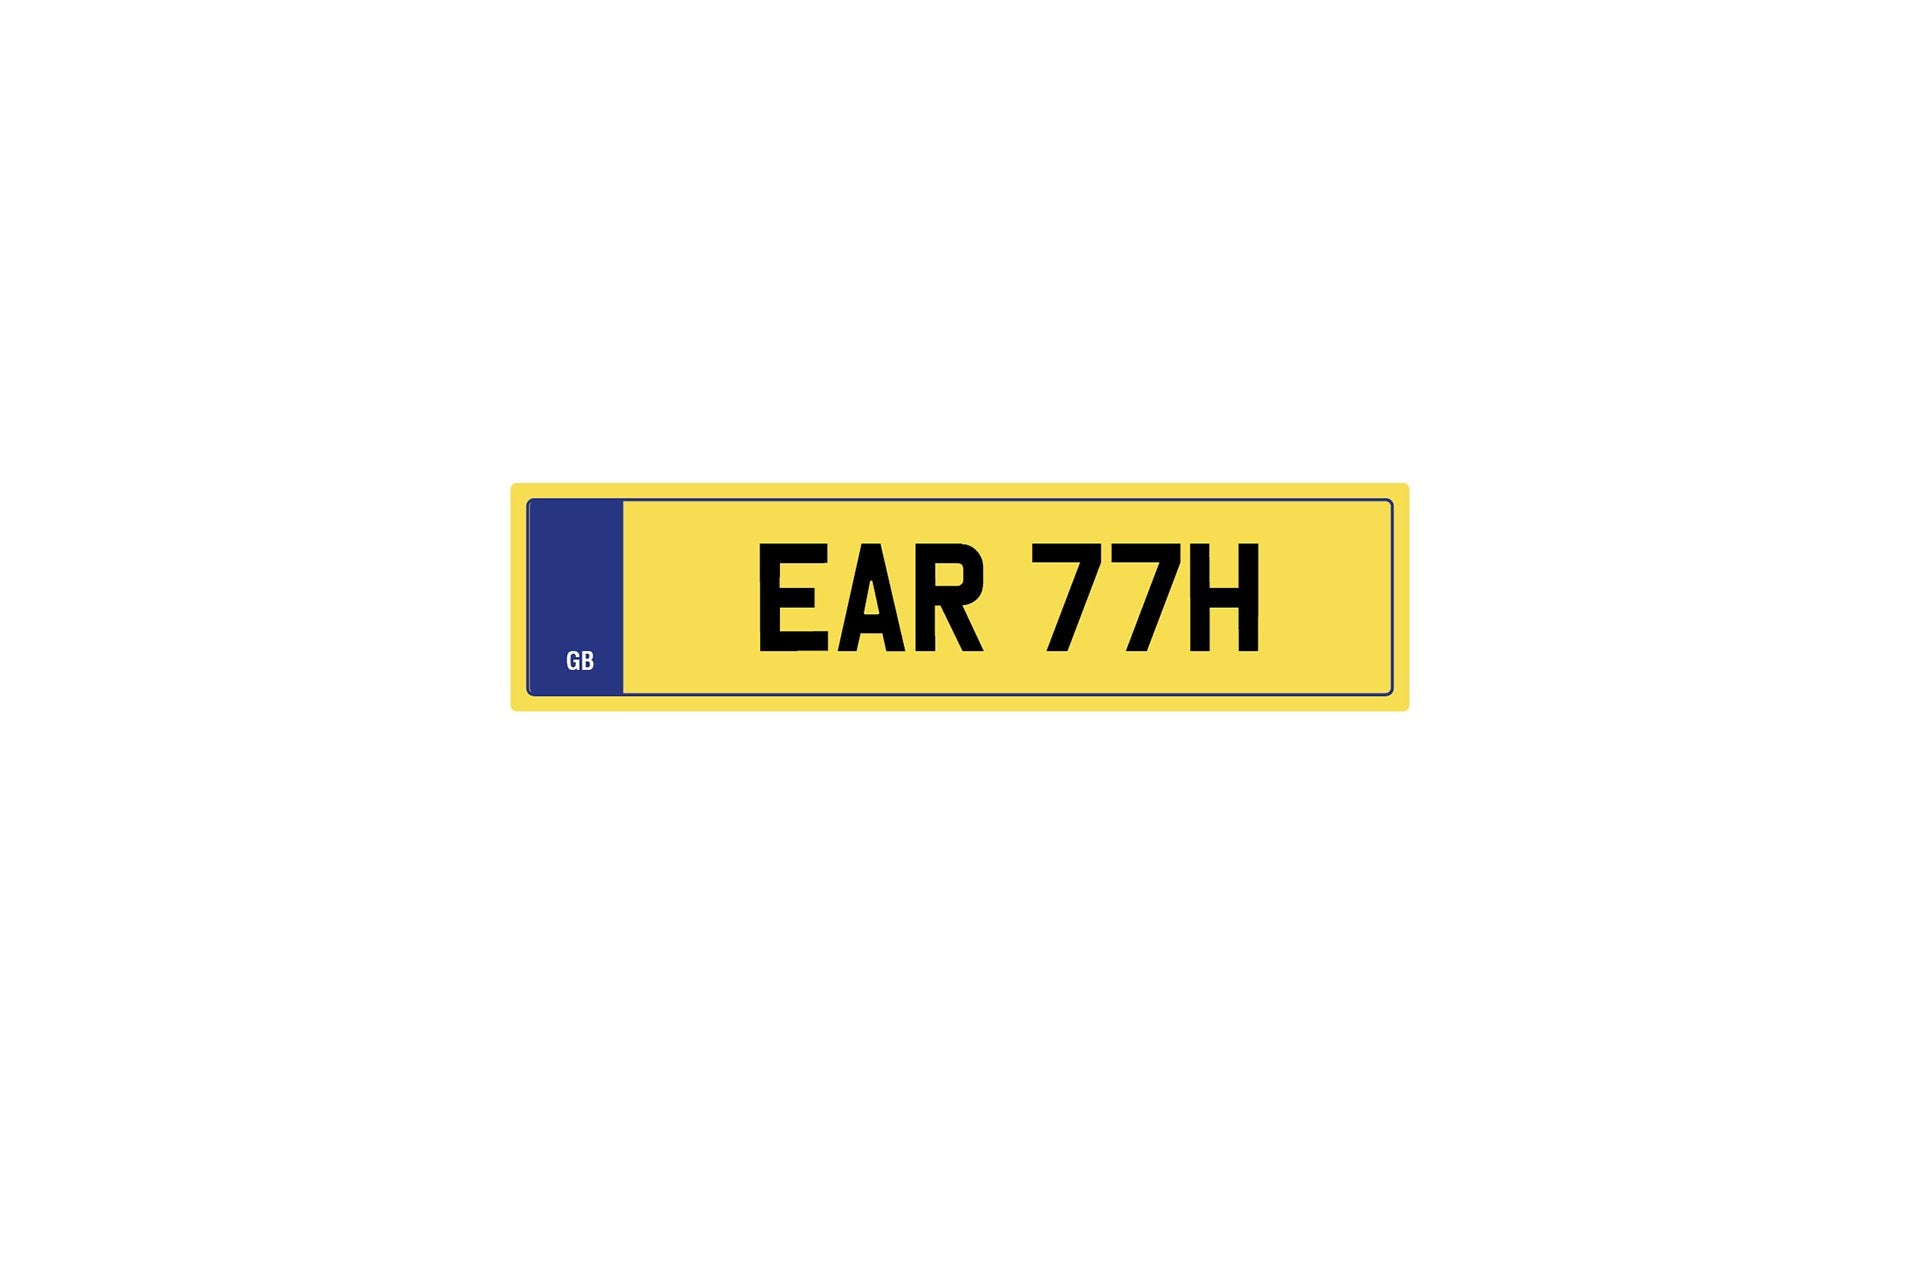 Private Plate Ear 77H by Kahn - Image 231